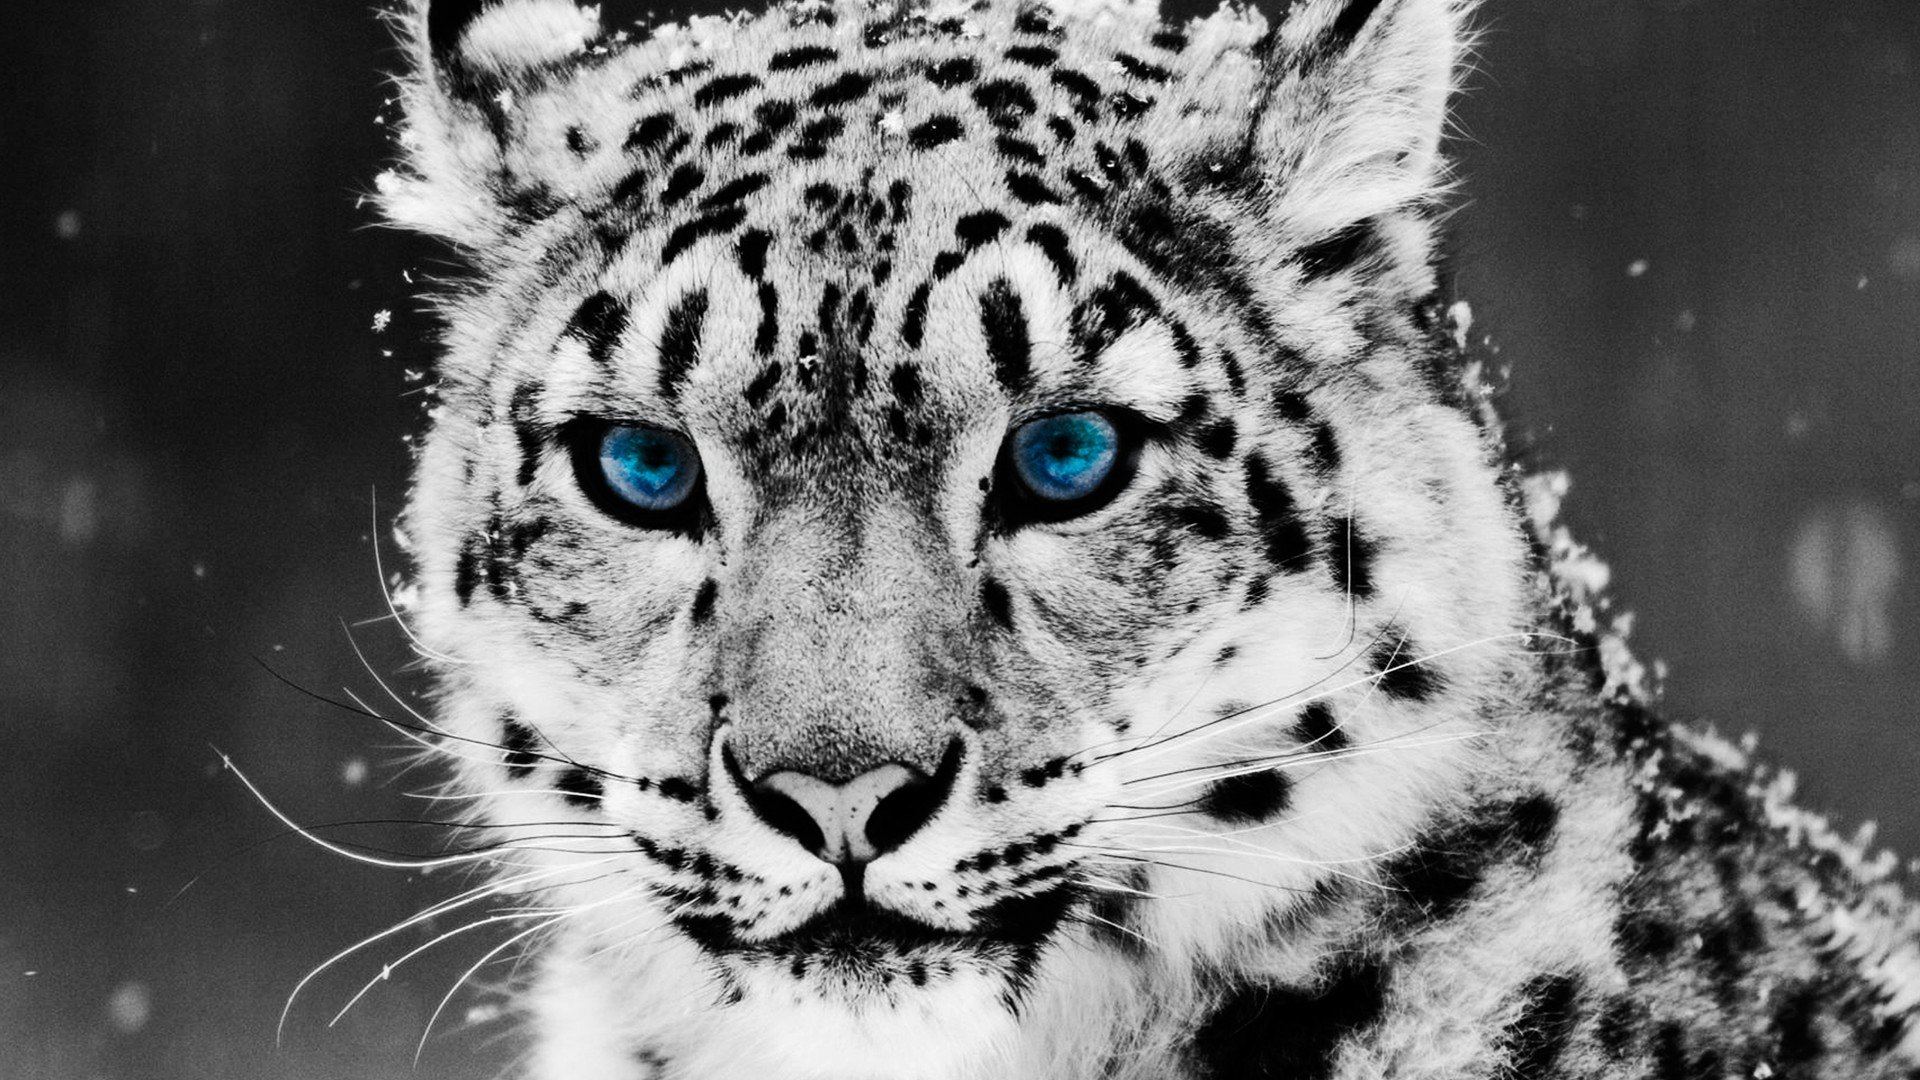 cool wallpapers with animals wallpapersafari